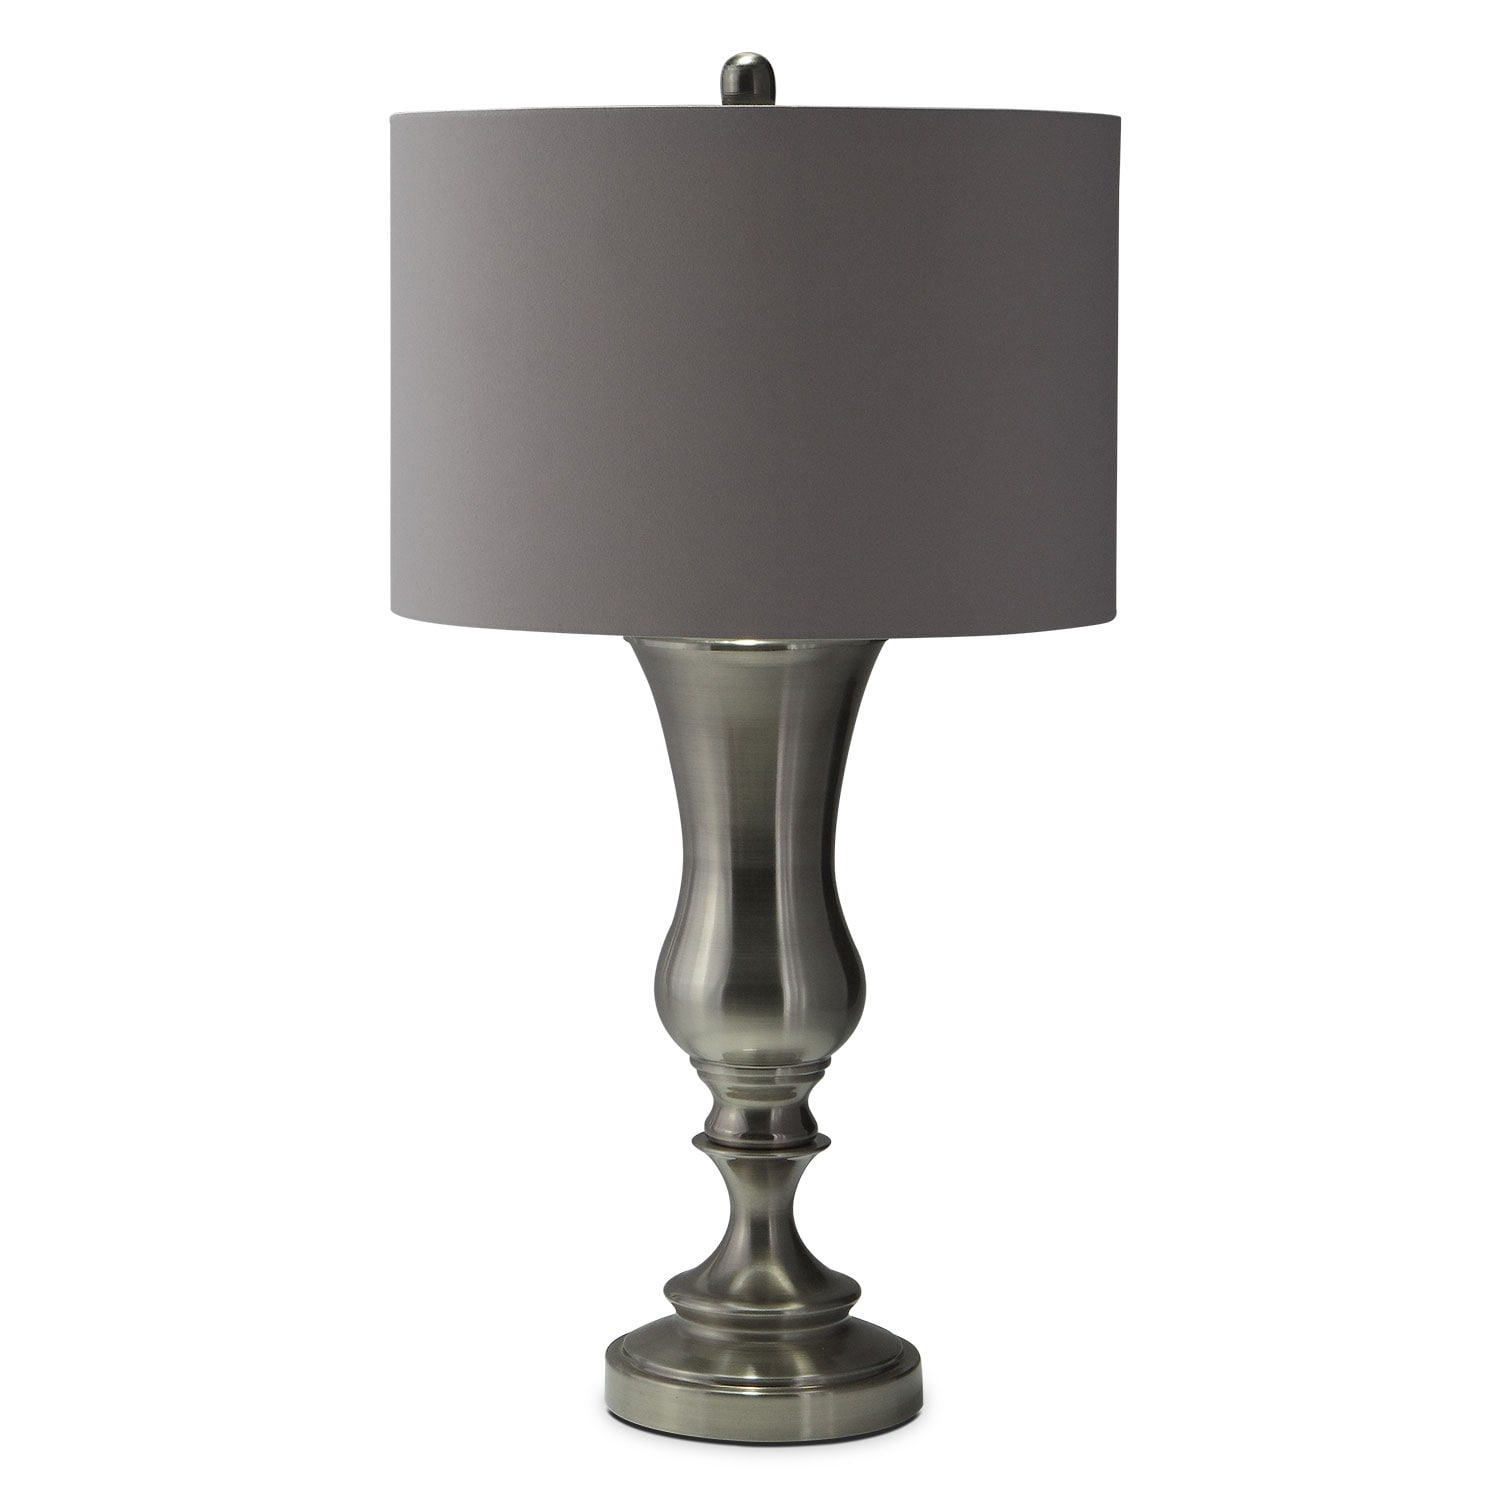 Brush Coal Urn Table Lamp